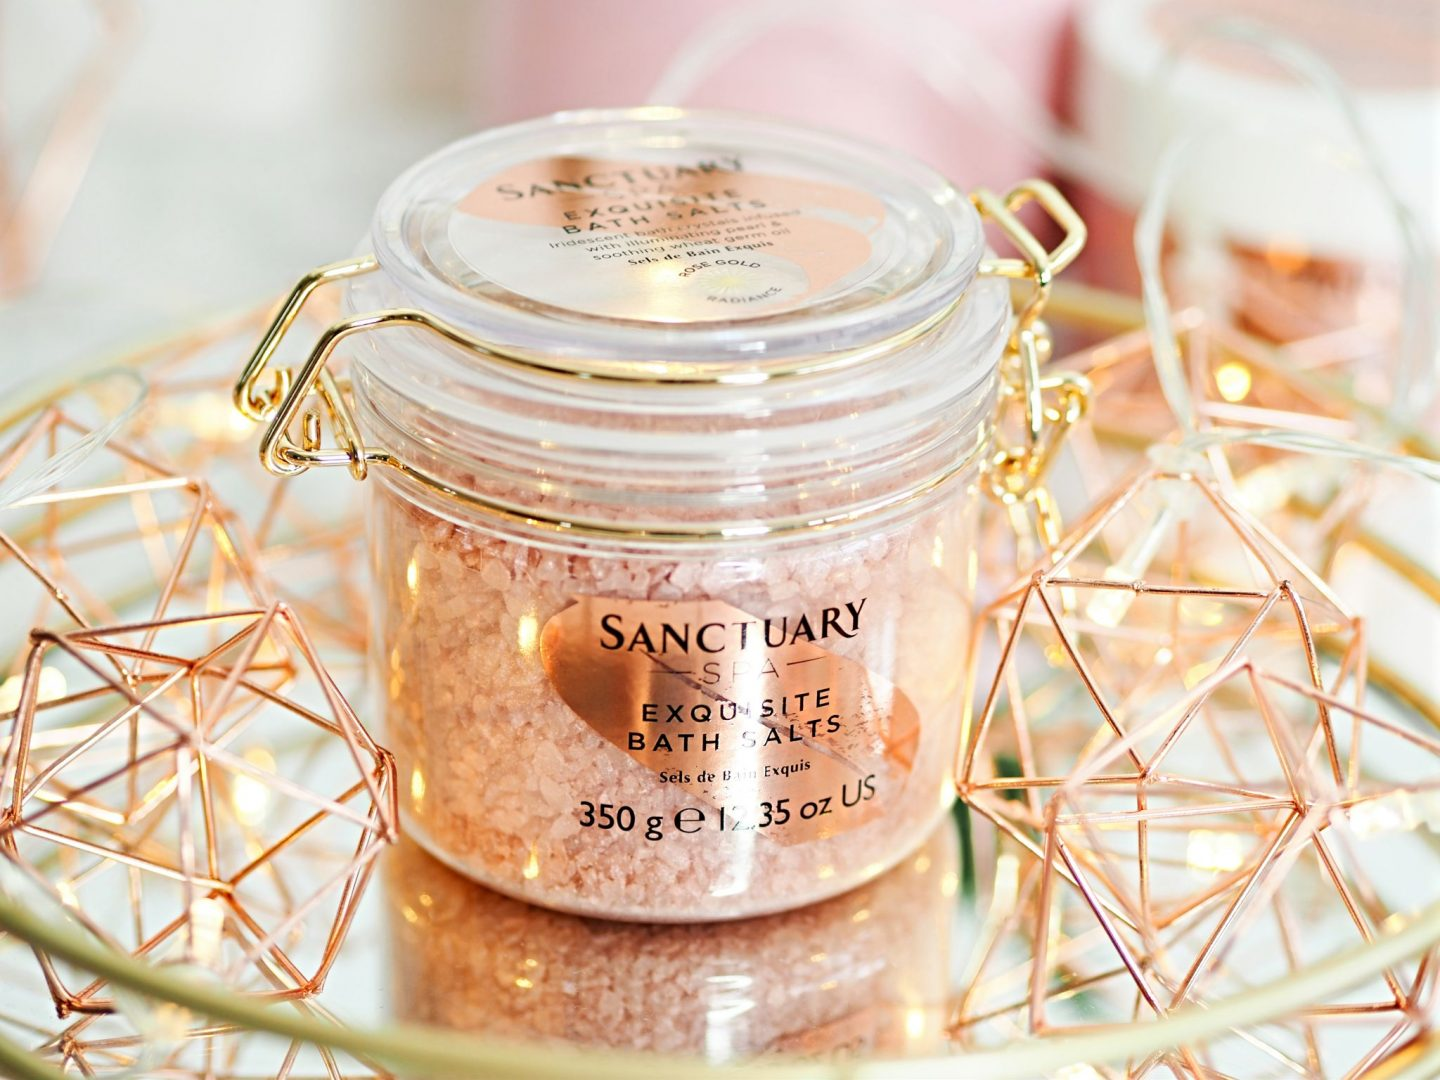 Sanctuary Spa Exquisite Bath Salts